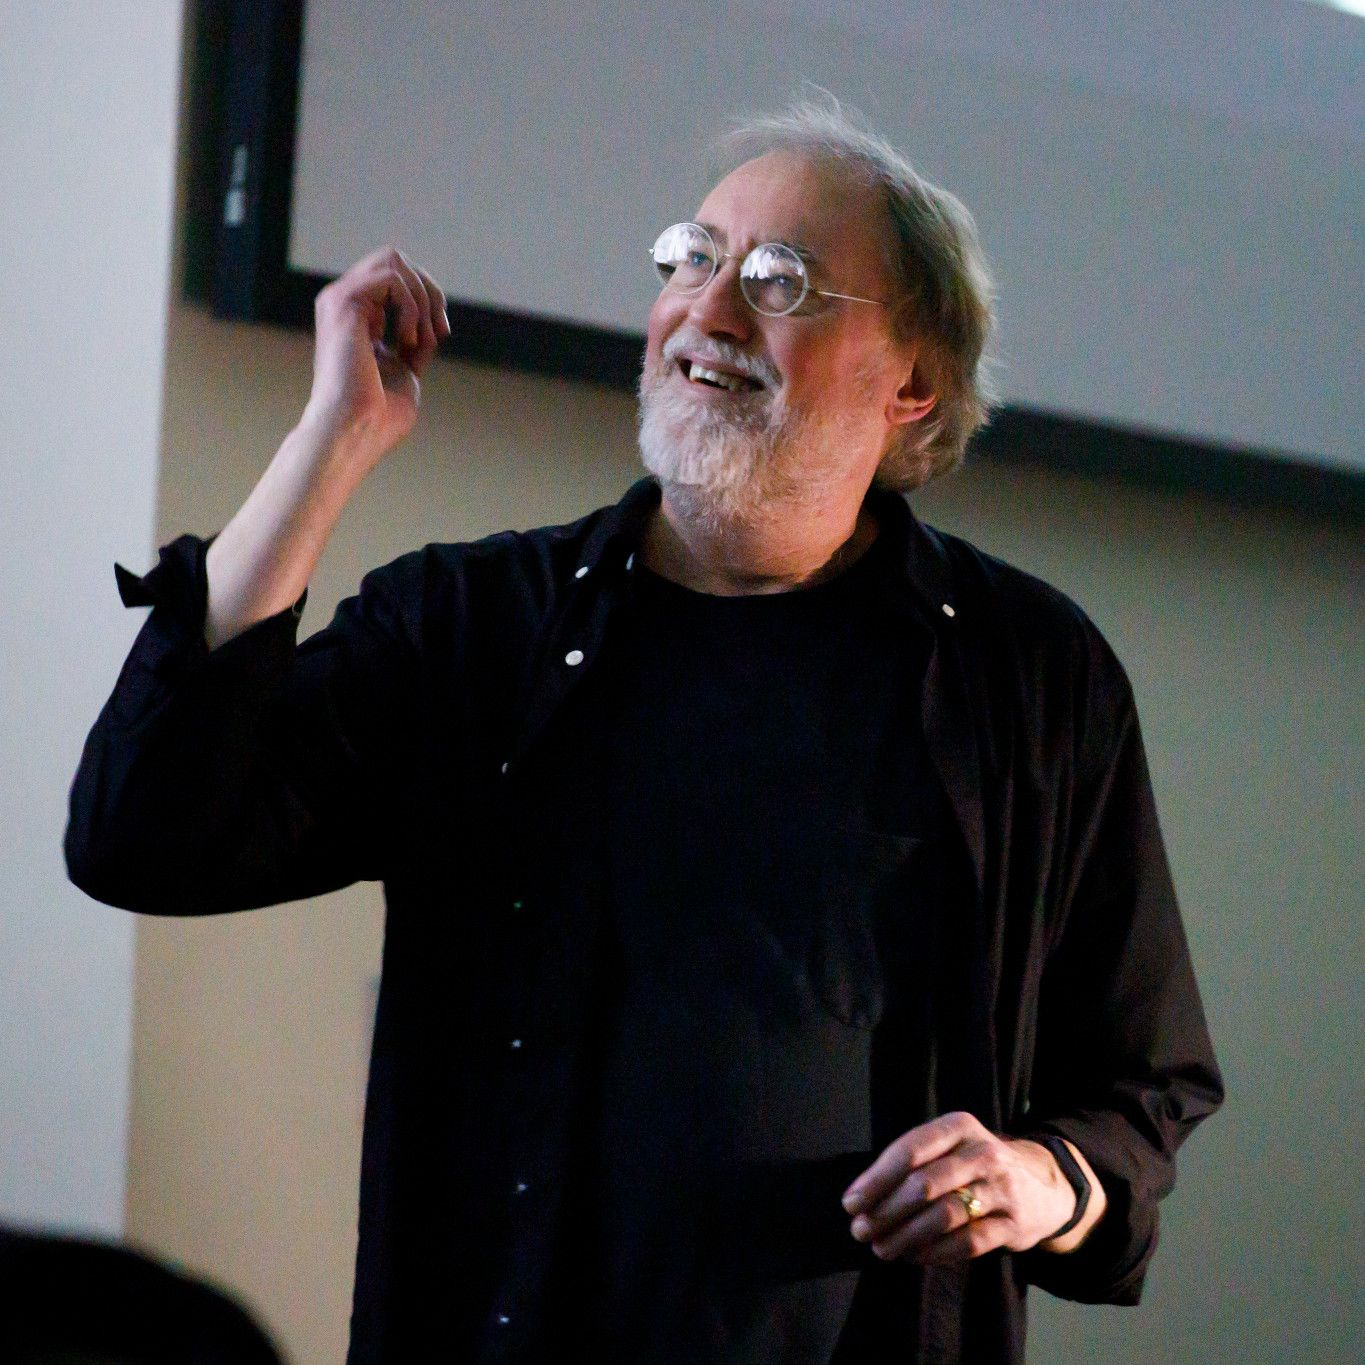 Glenn Gass reacts with a smile during a lecture